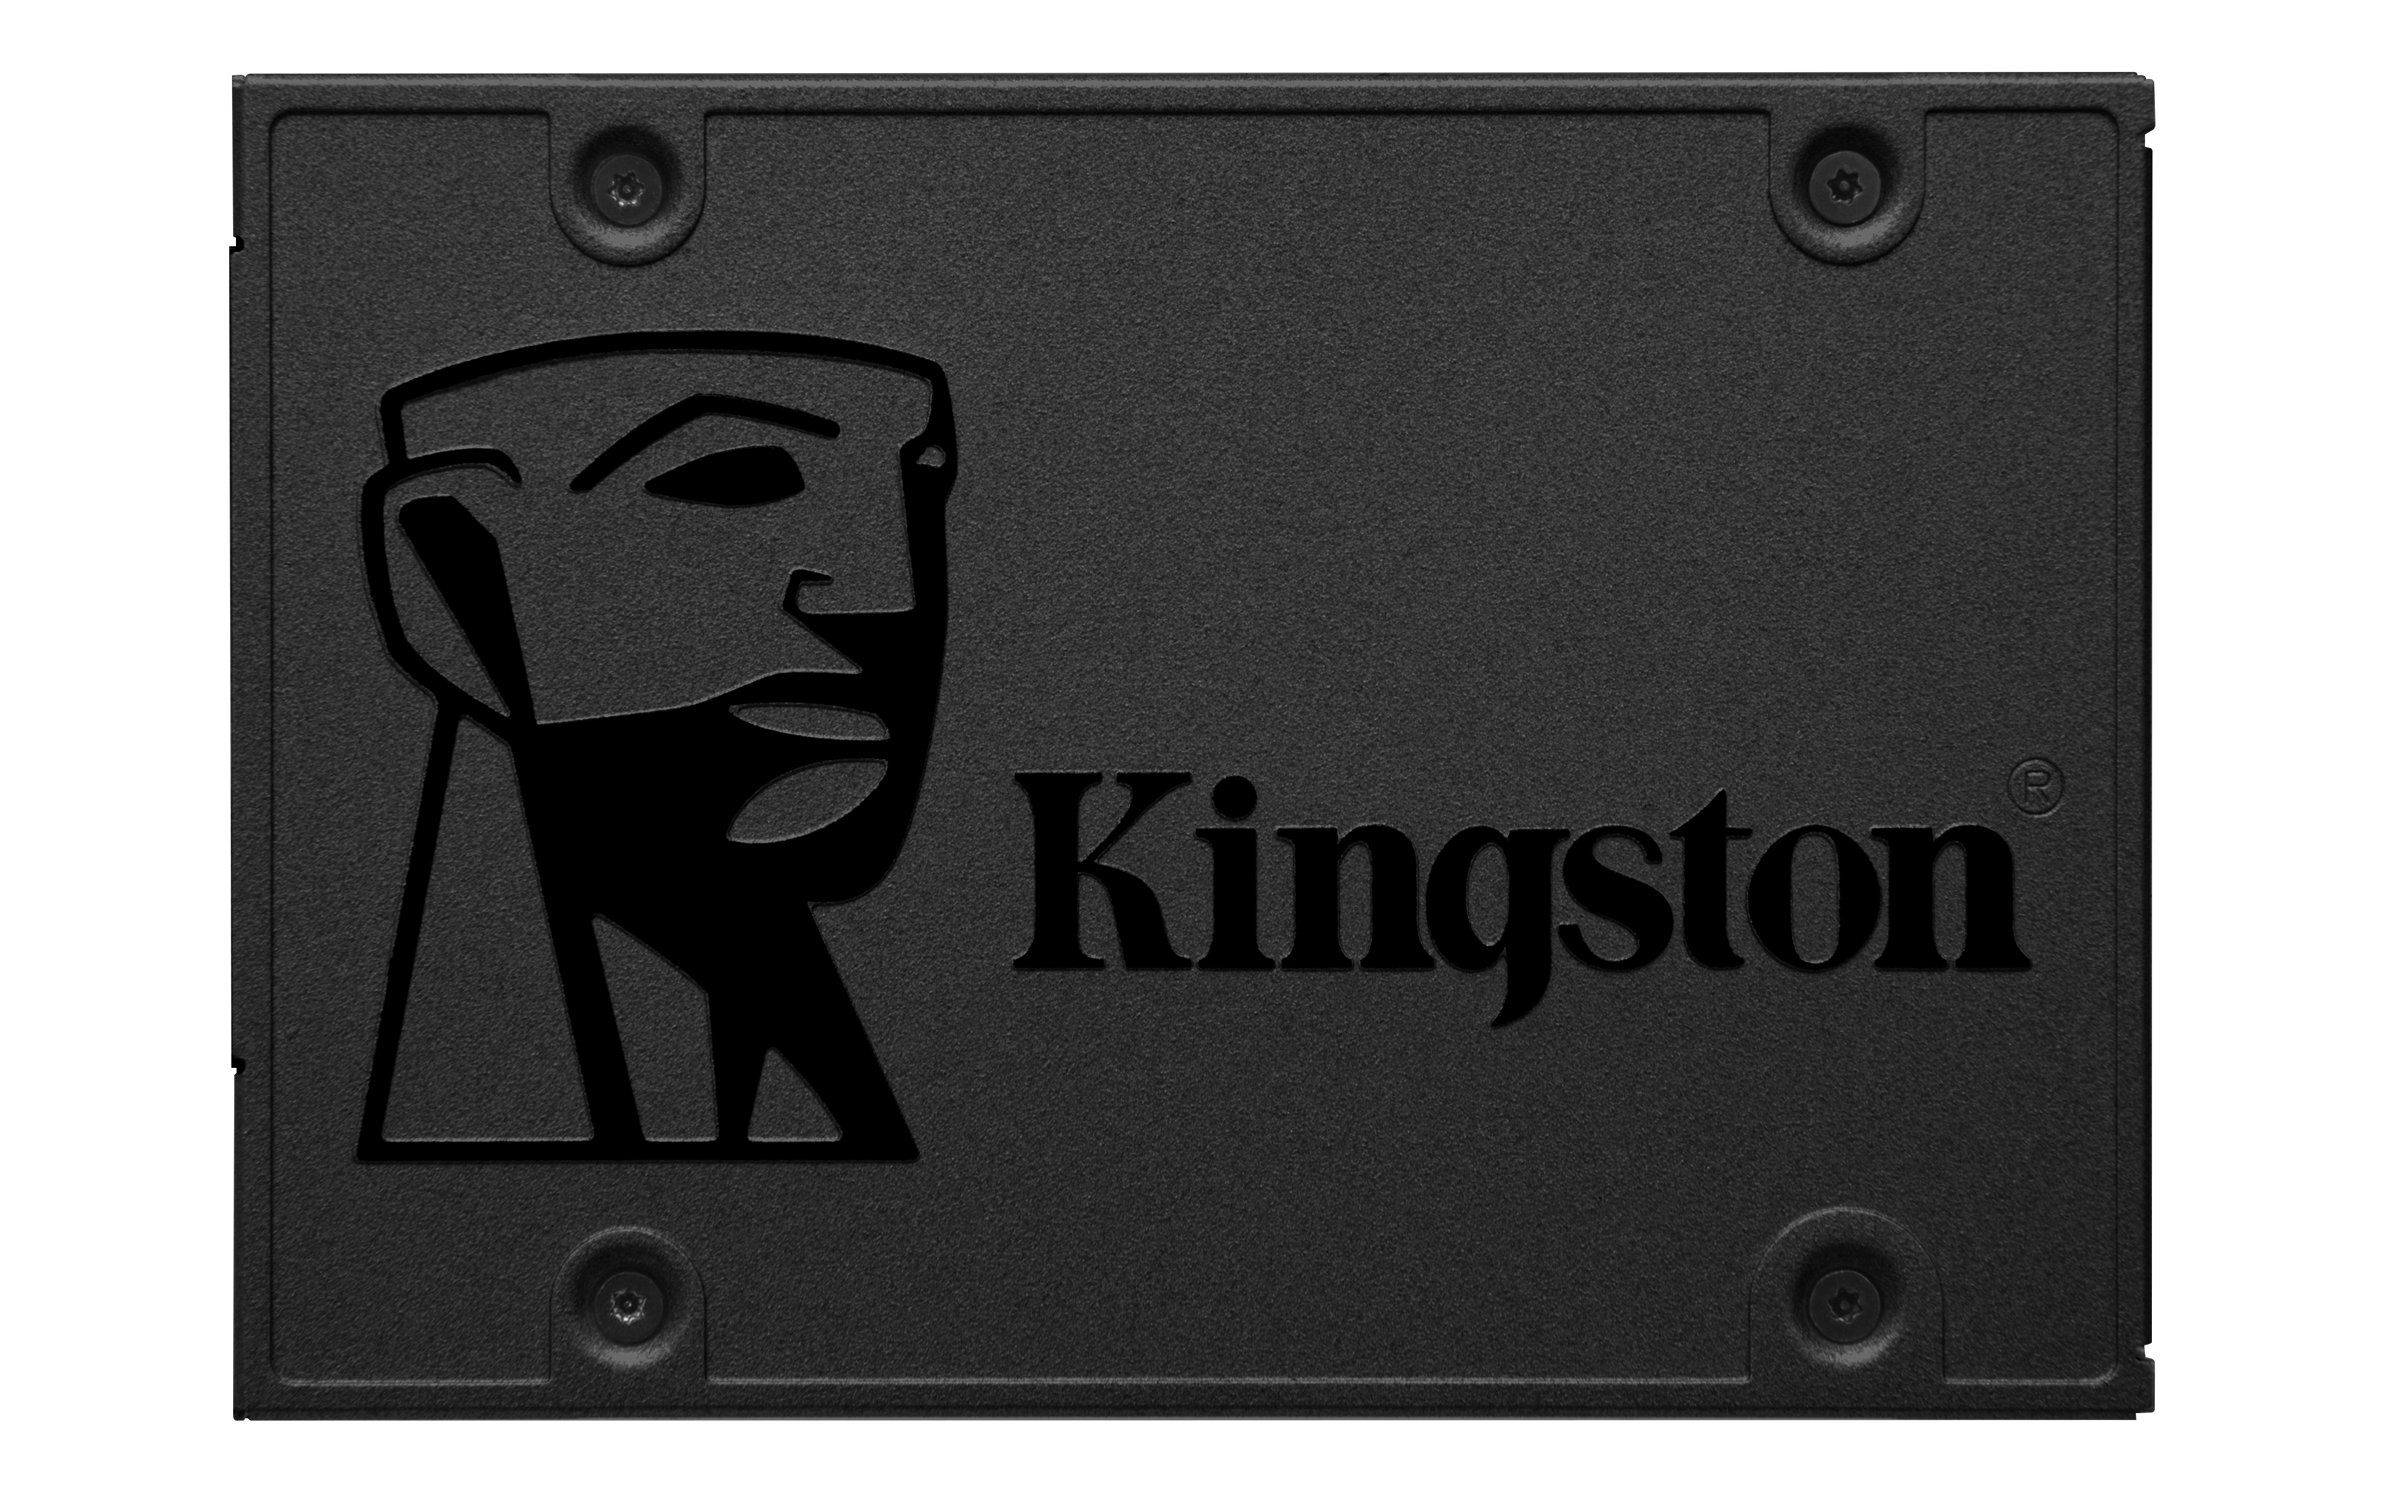 Kingston 240GB A400 SATA 3 2.5'' Internal SSD SA400S37/240G - HDD Replacement for Increase Performance by Kingston